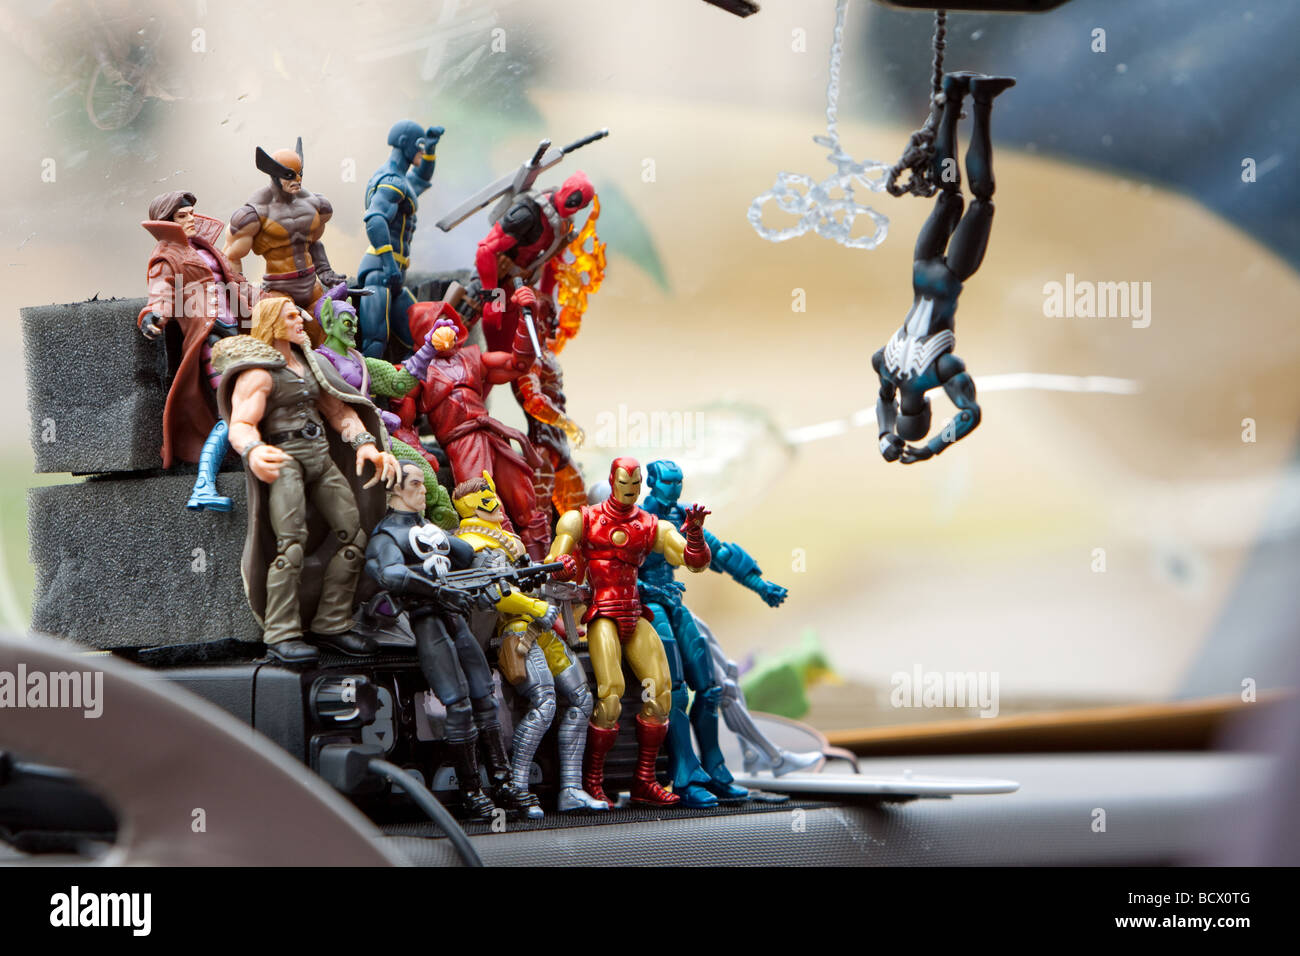 Comicbook figurines inside a storm chaser s car in Salina Kansas - Stock Image